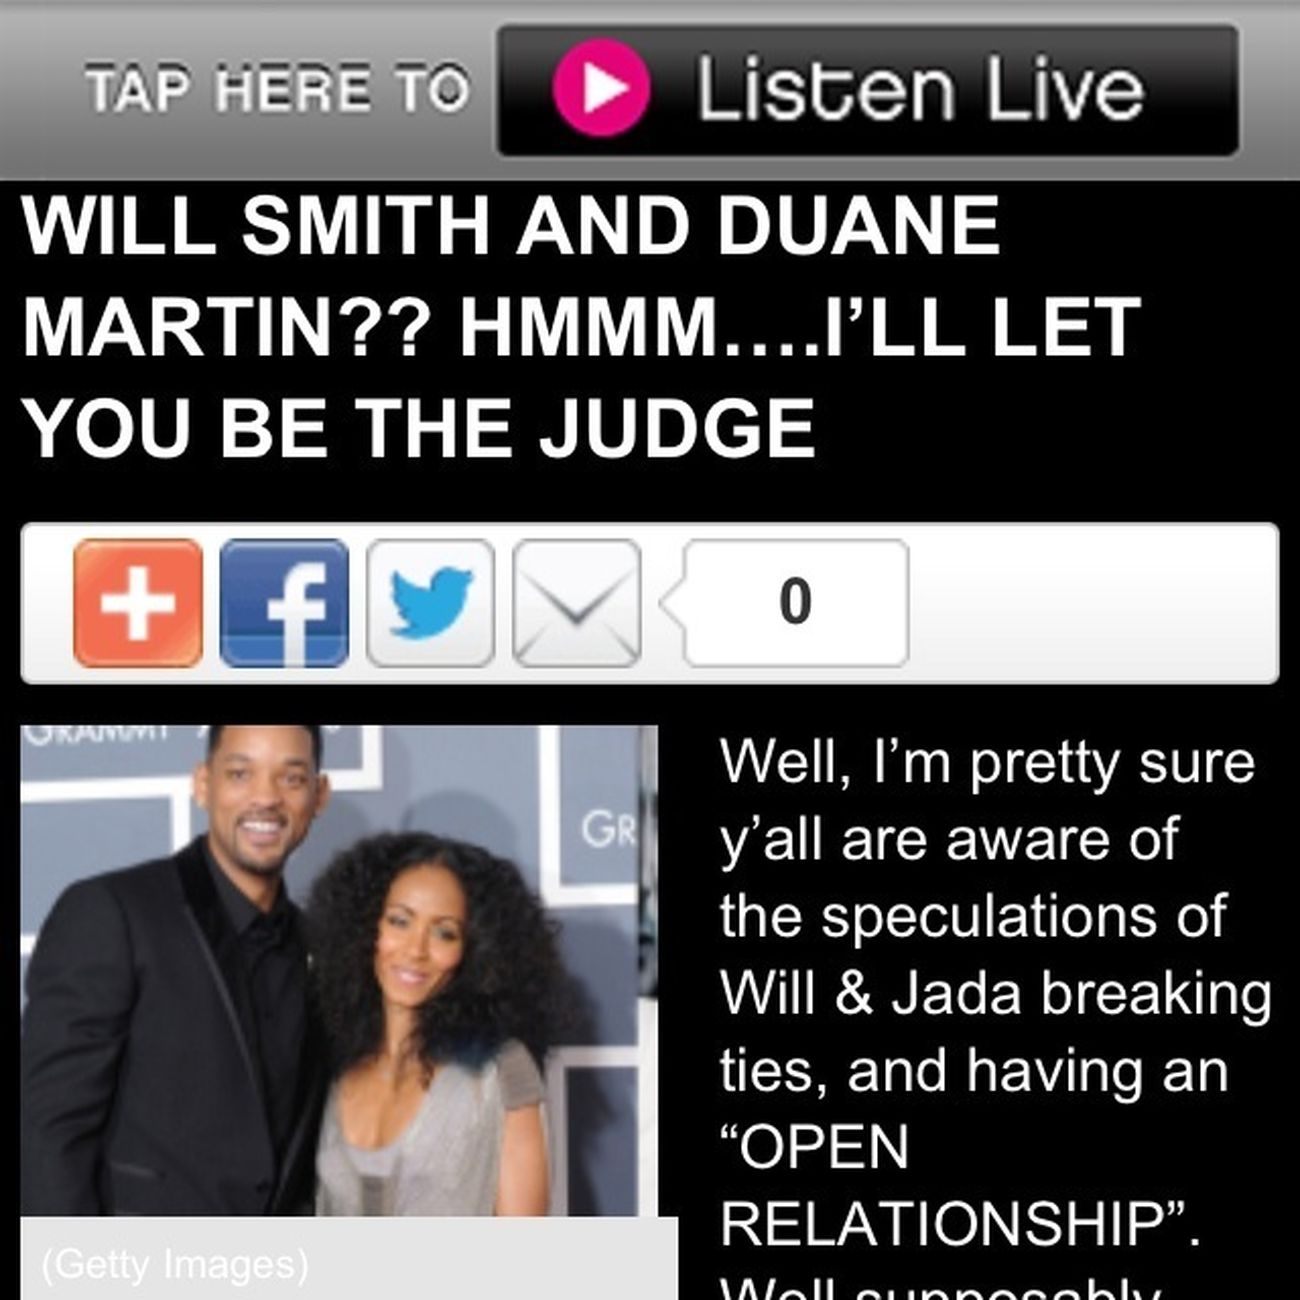 Will Smith and Duane Martin together??? CHECK IT OUT NOW!!! http://bit.ly/YWQV9q log onto @power98fm now!!